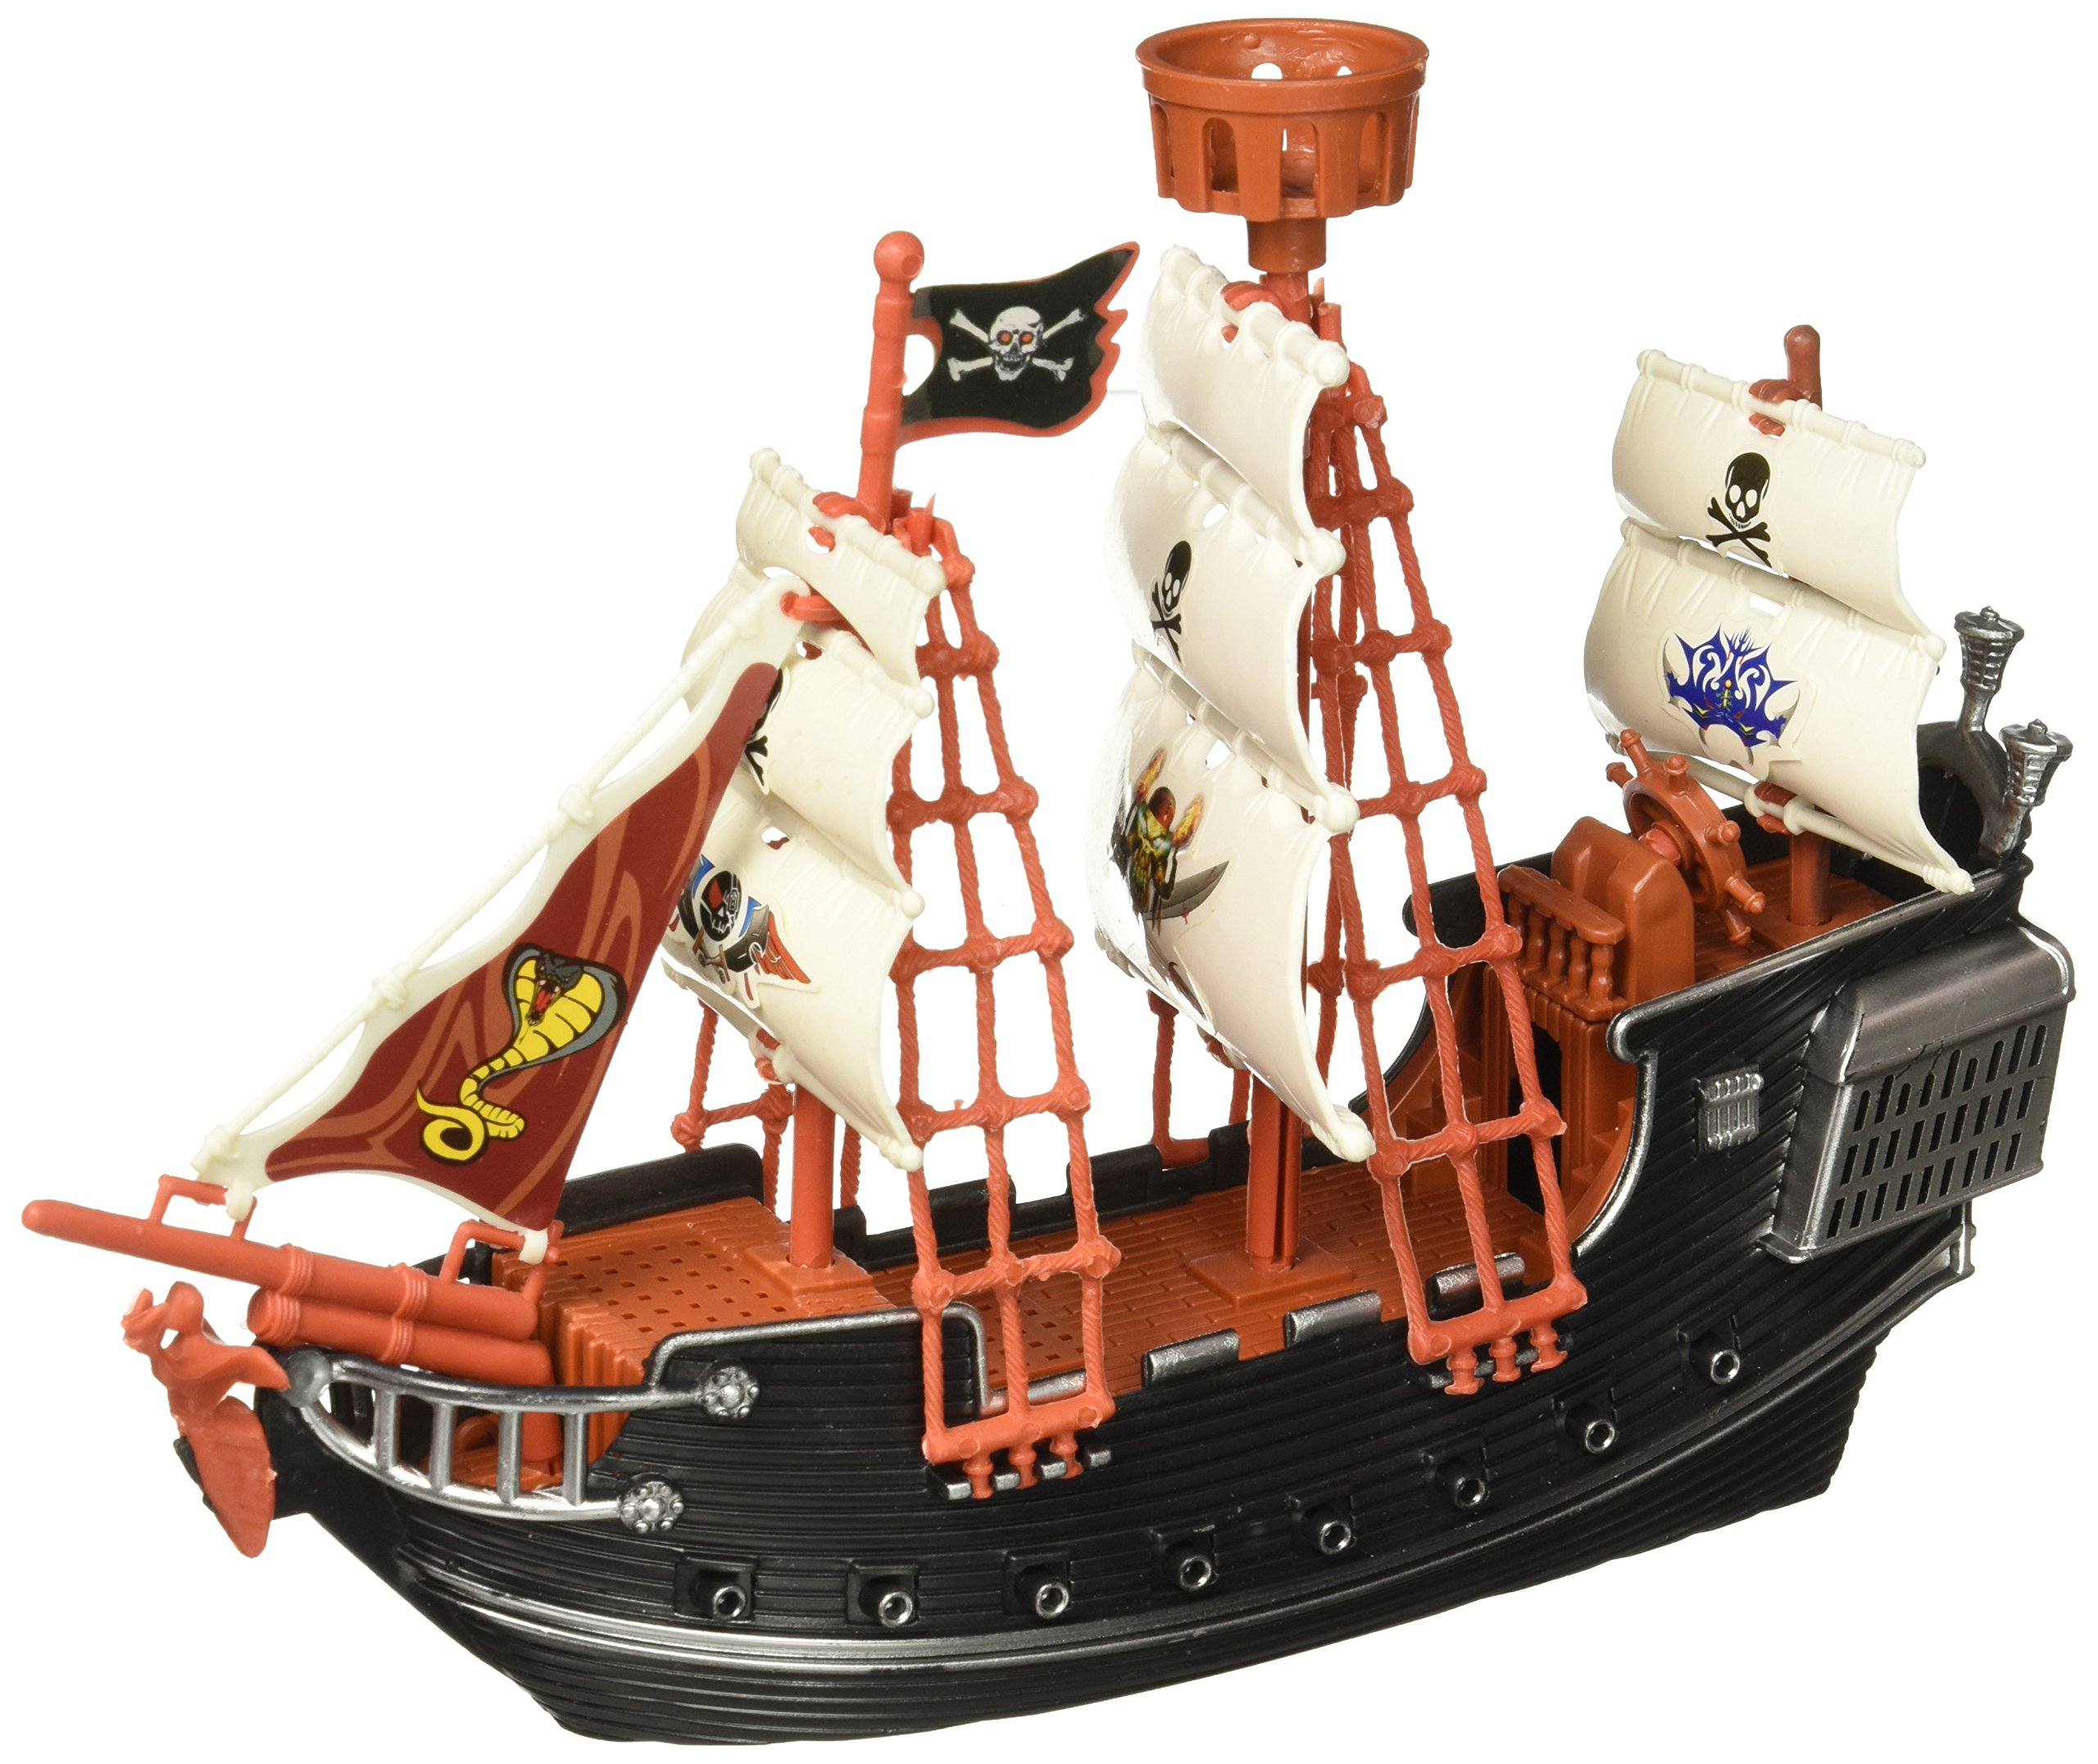 Oasis Supply Extra Large Pirate Ship Cake Topper - 10'' Long by Oasis Supply (Image #3)